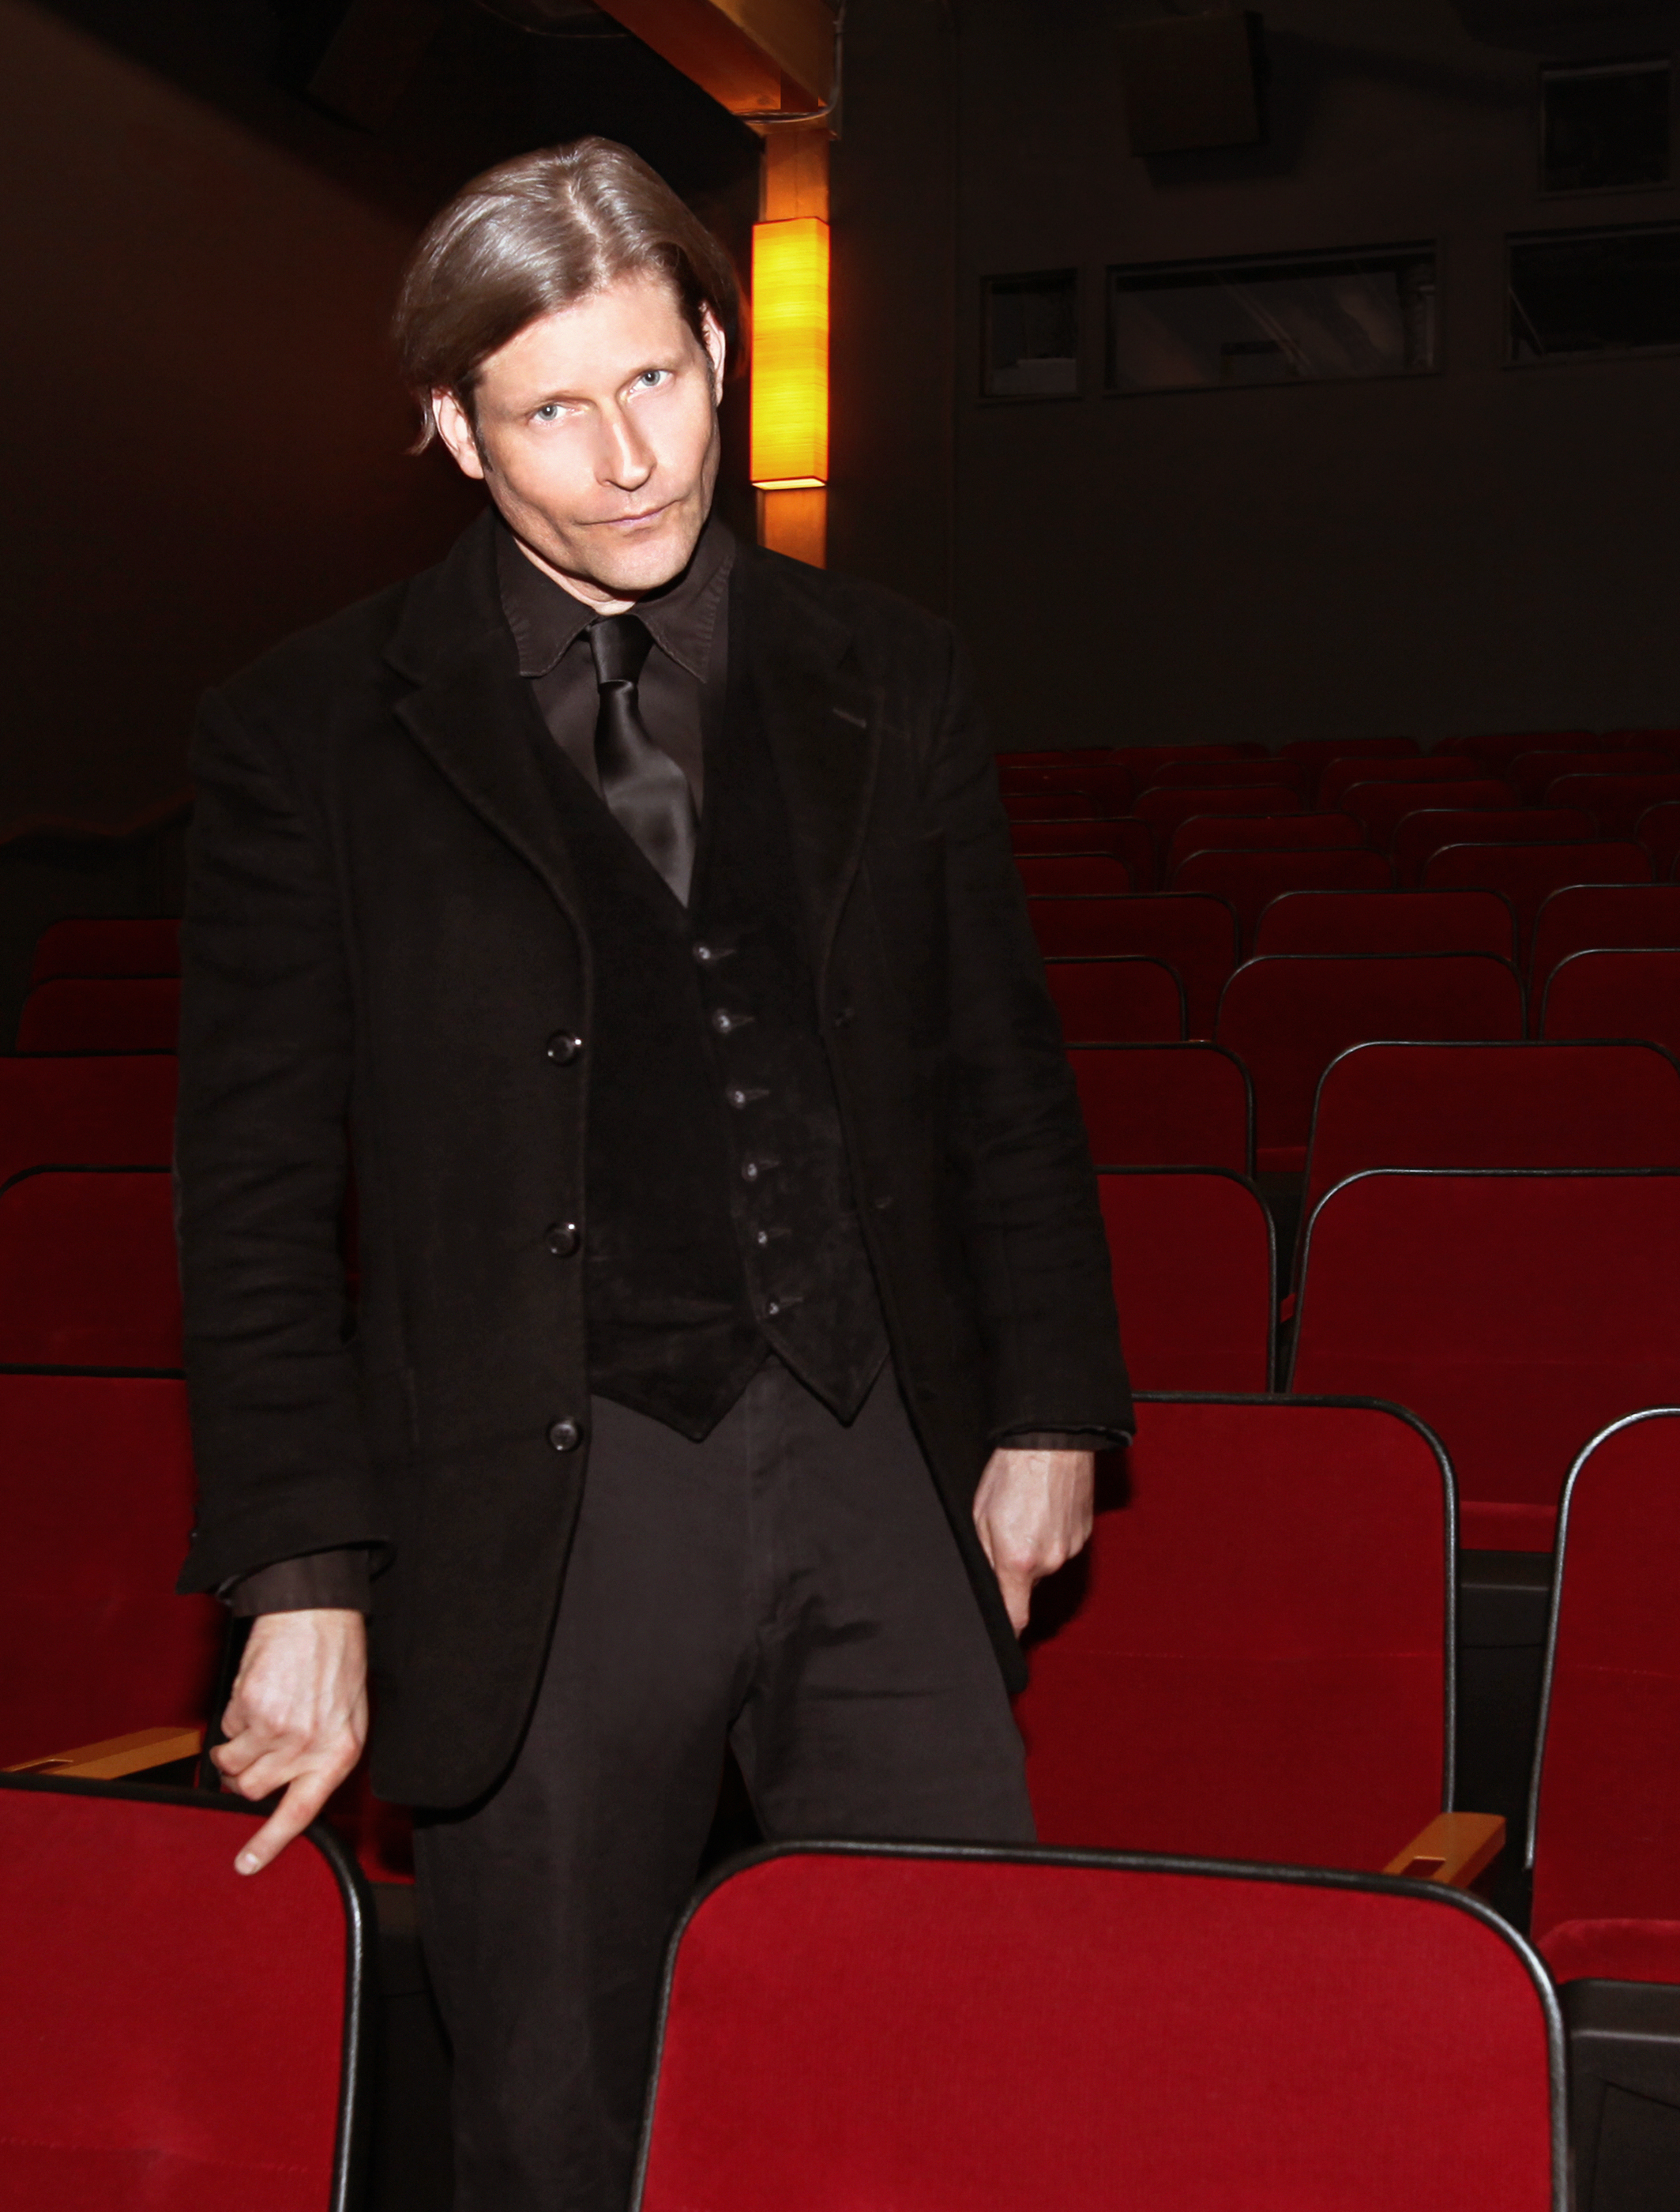 Actor Crispin Glover at Northwest Film Forum.  Read my interview with Glover here >>>